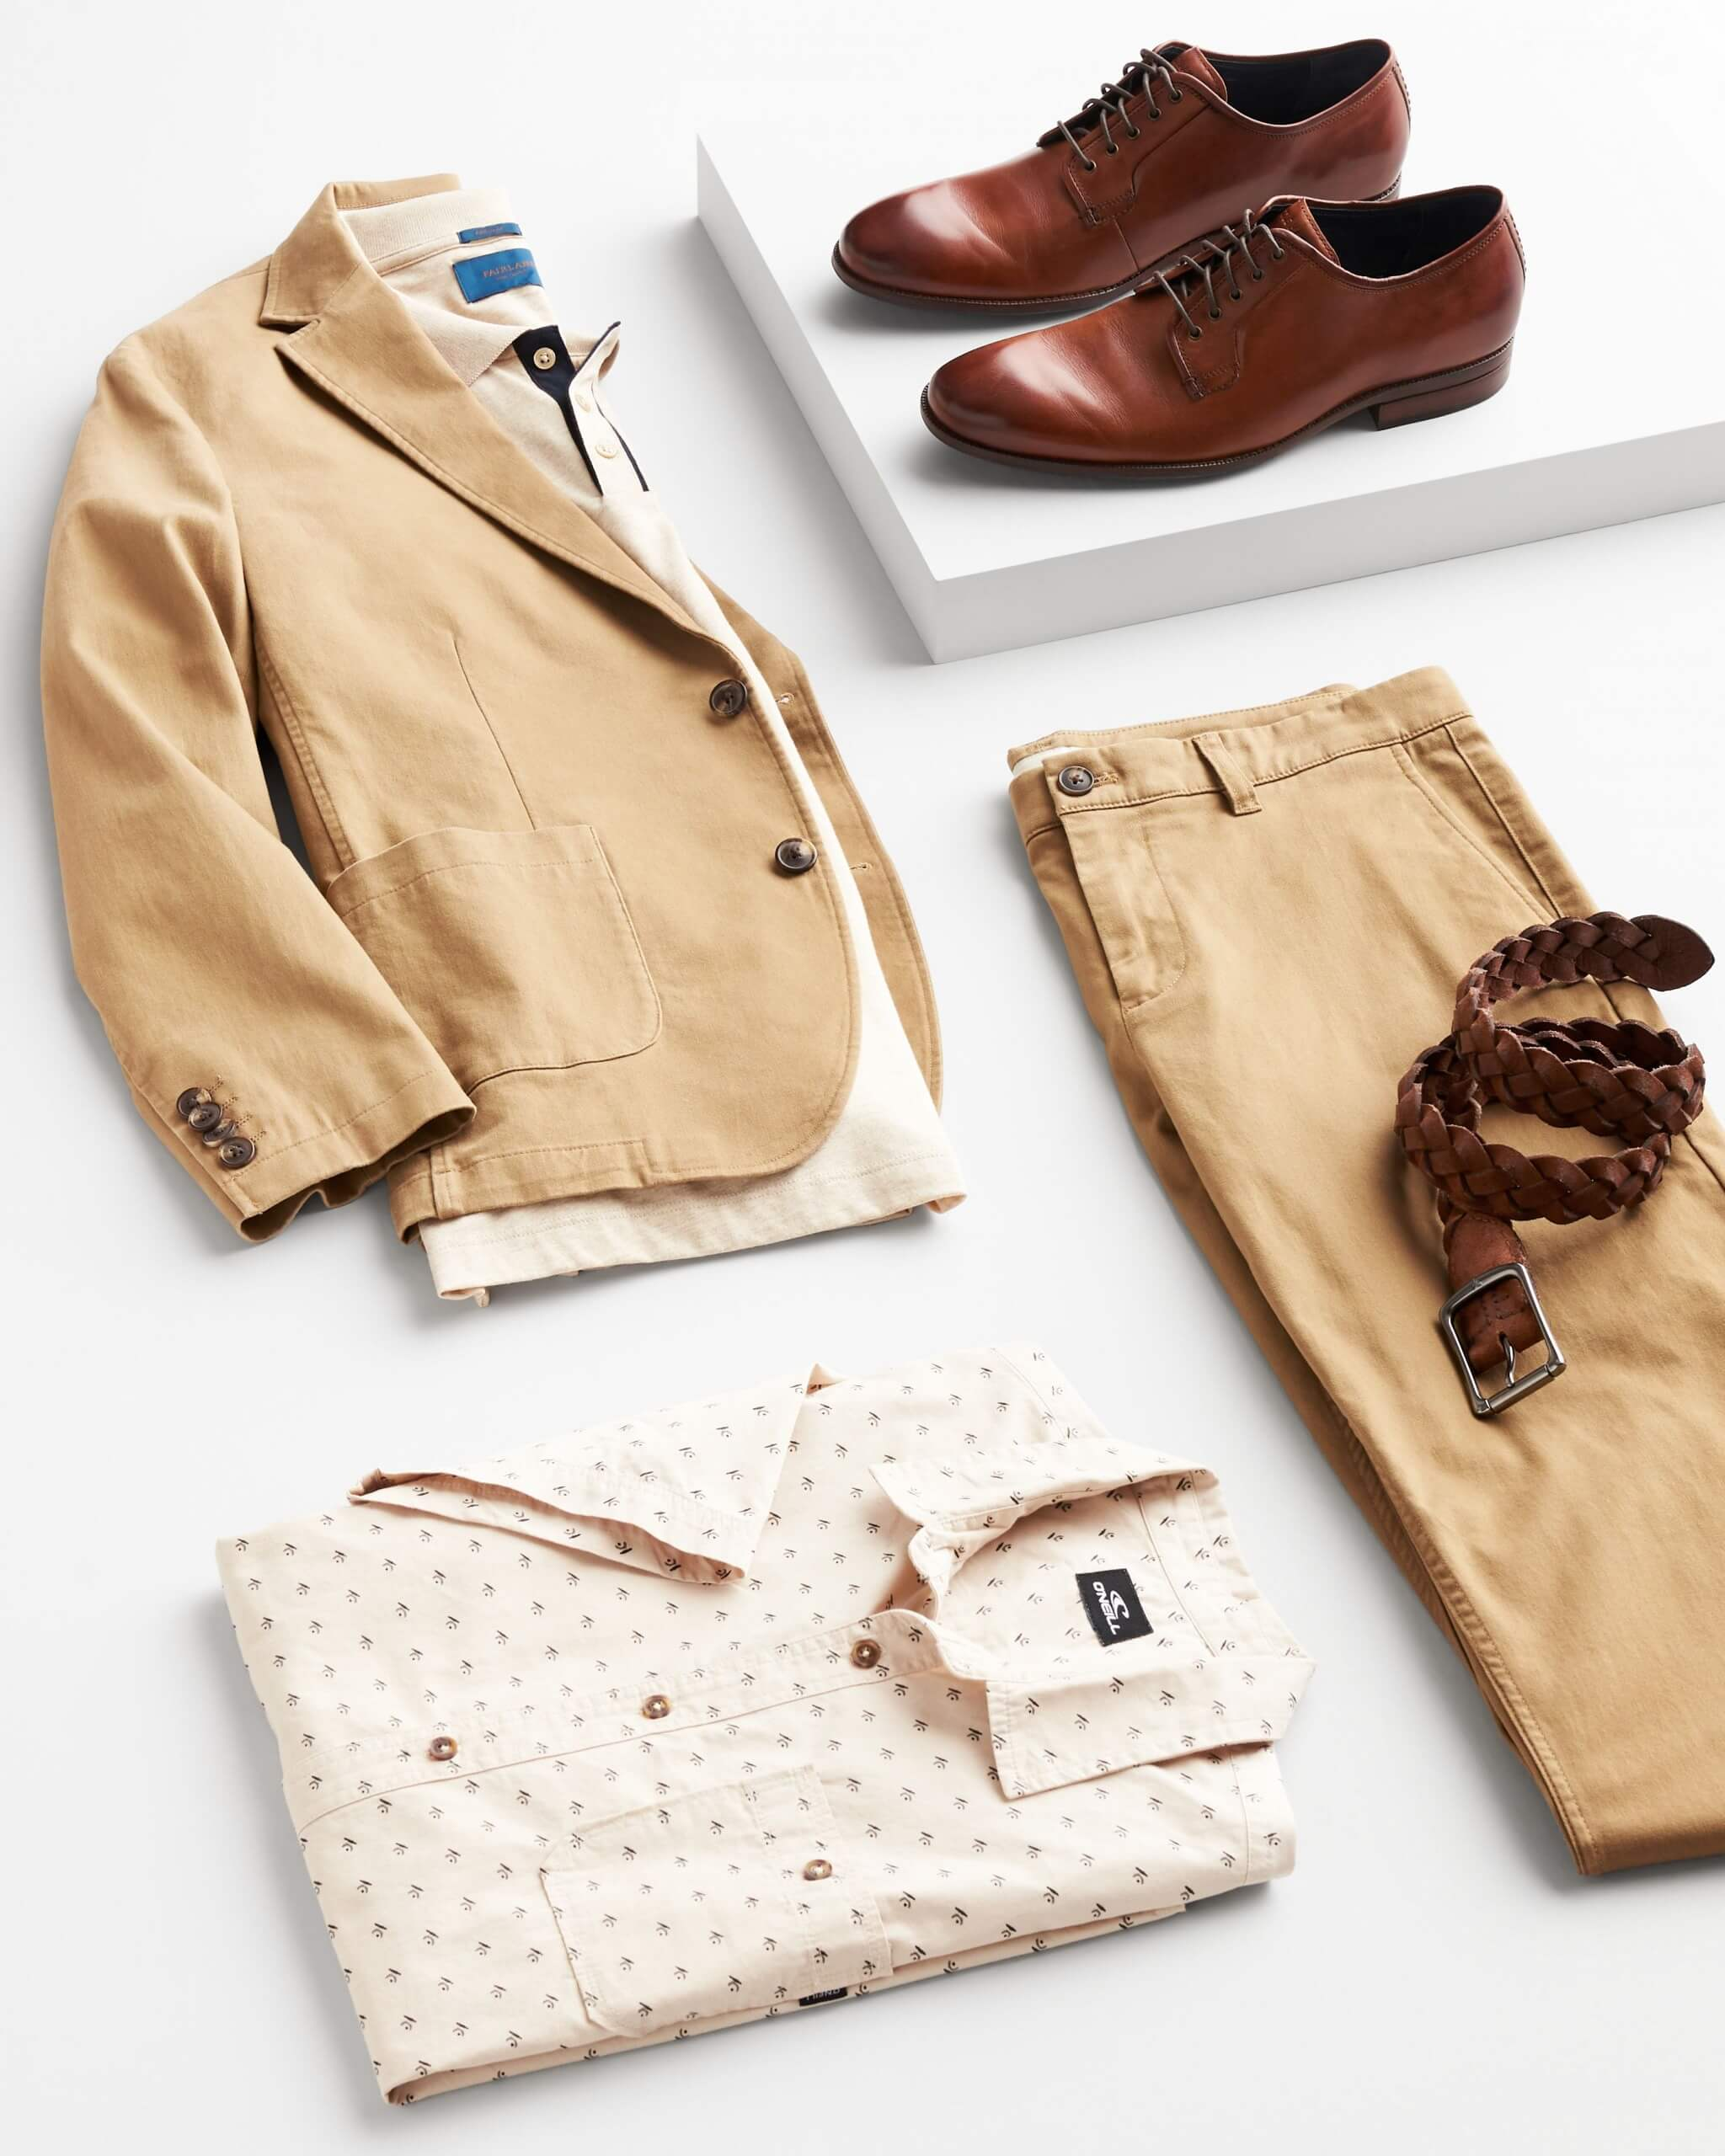 Stitch Fix Men's outfit laydown featuring cognac Oxford dress shoes on white block next to tan blazer over cream polo shirt, khaki chinos, brown belt and tan folded button-front shirt.